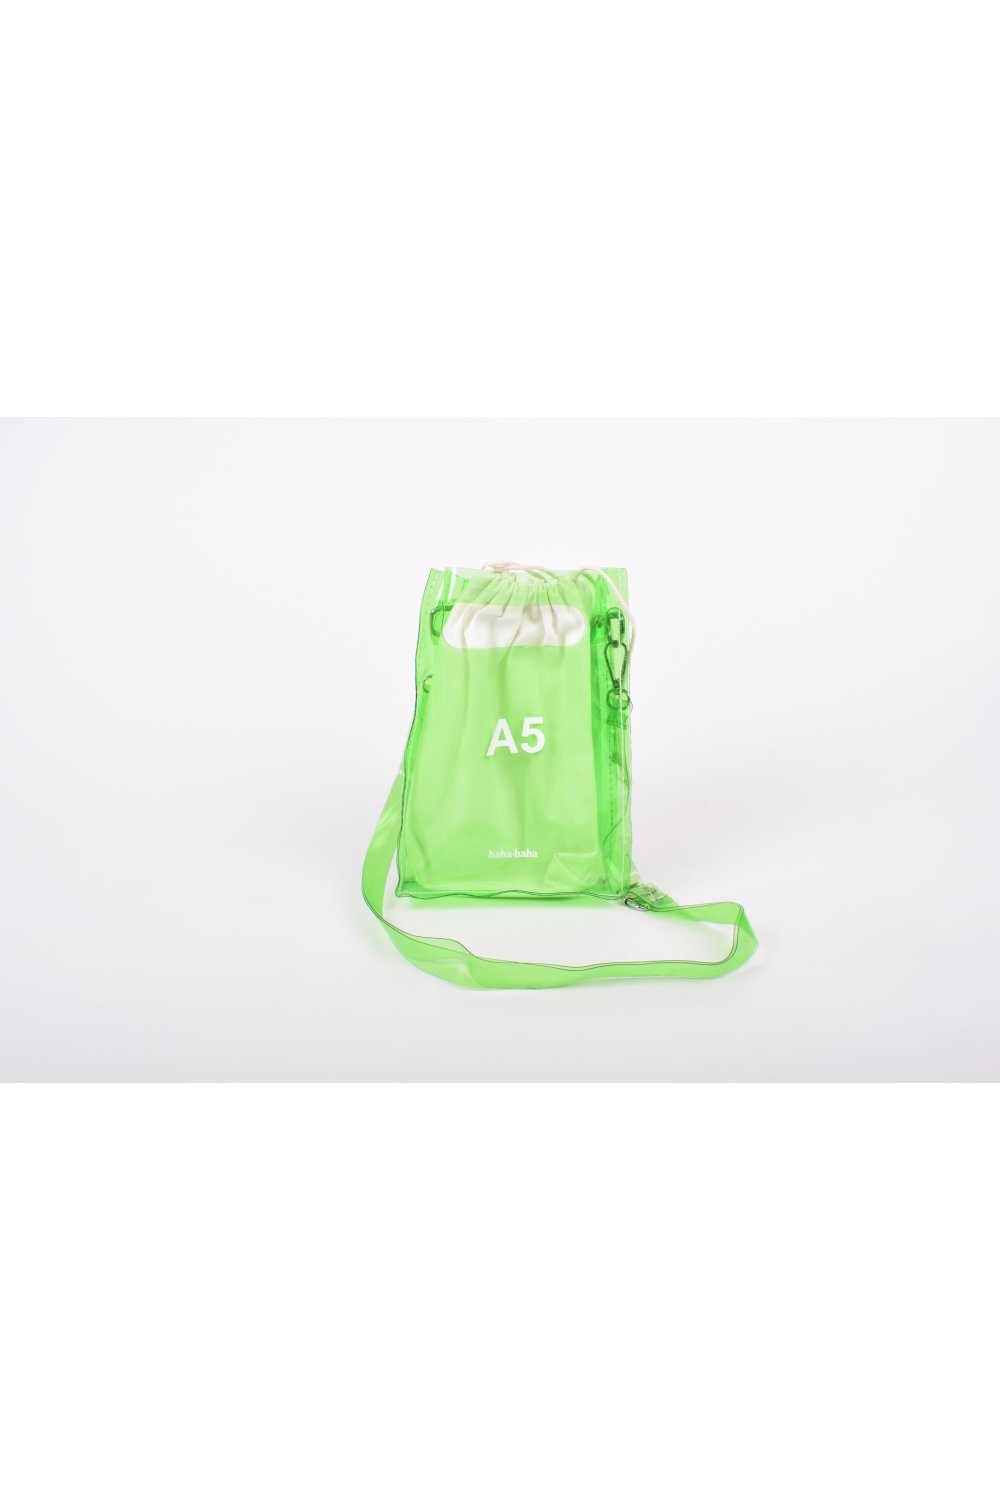 PLASTIC GREEN BAG